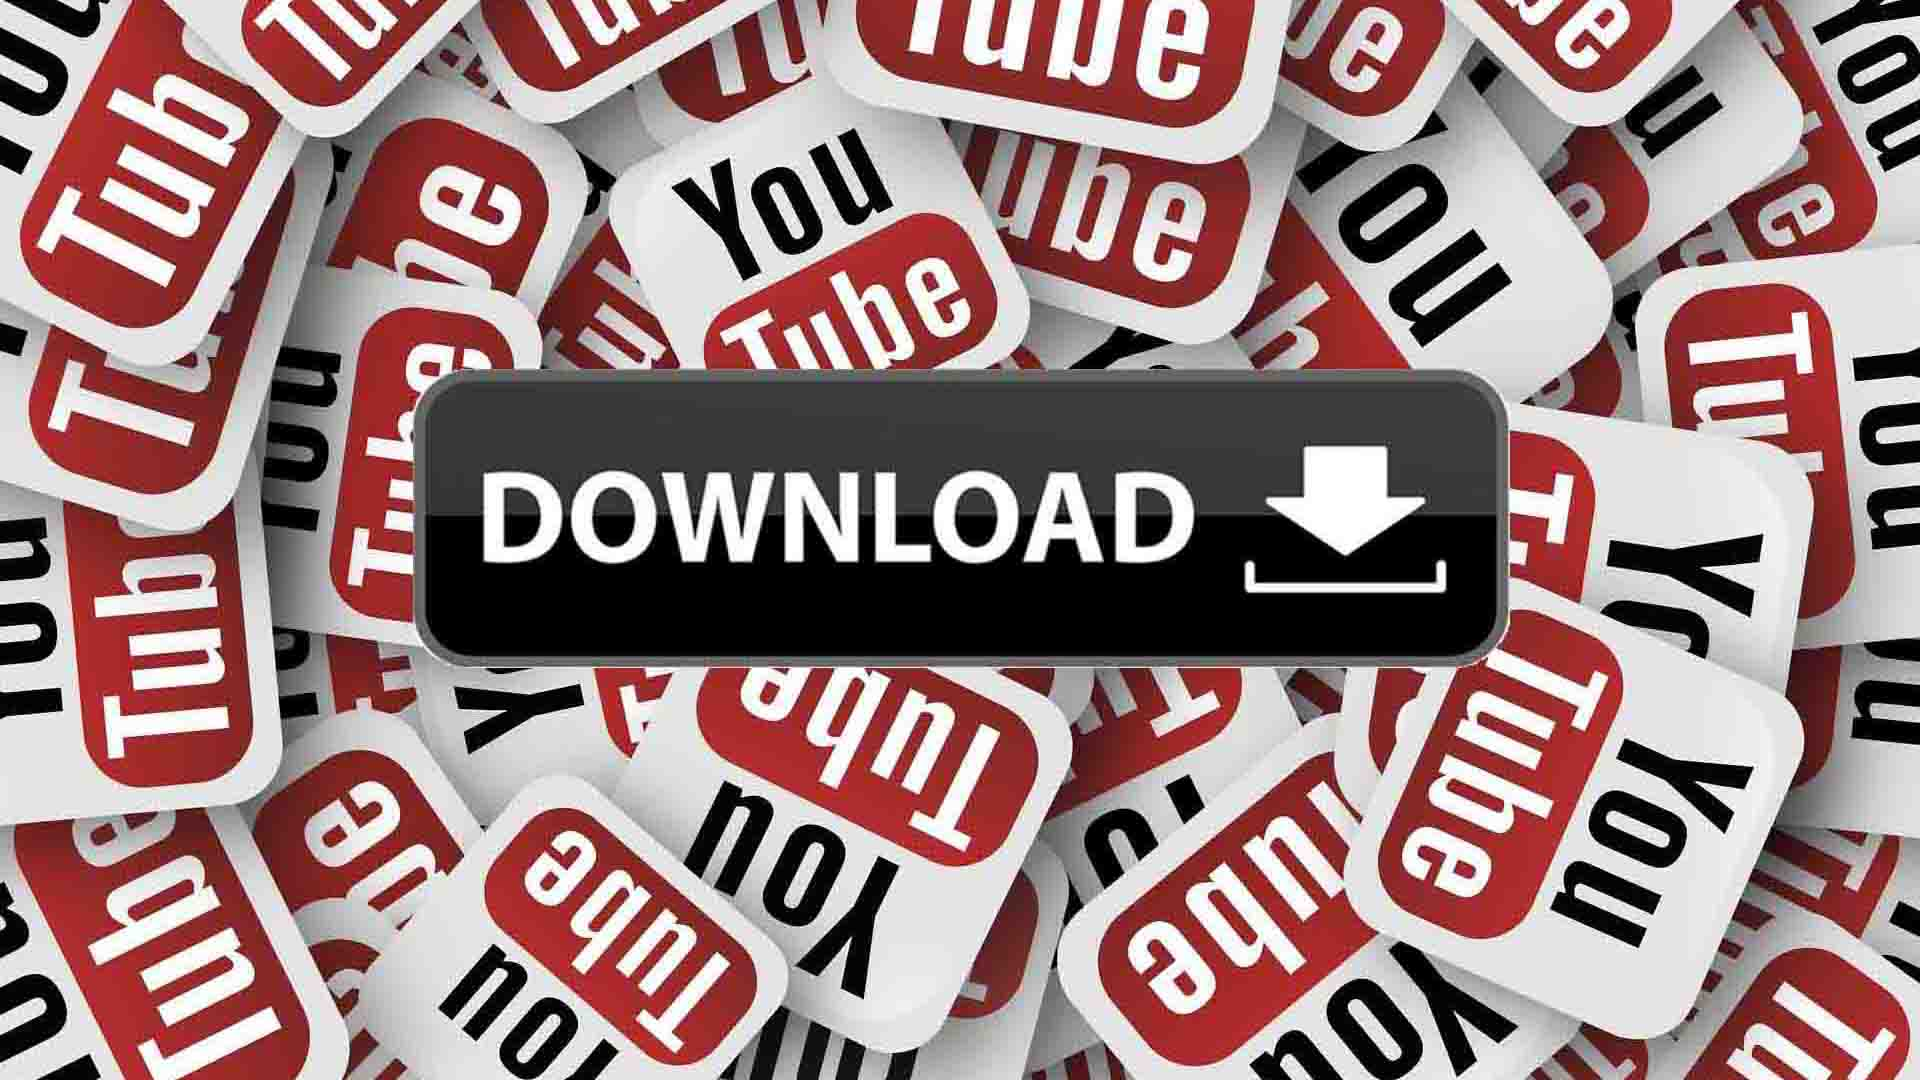 download button among youtube stickers